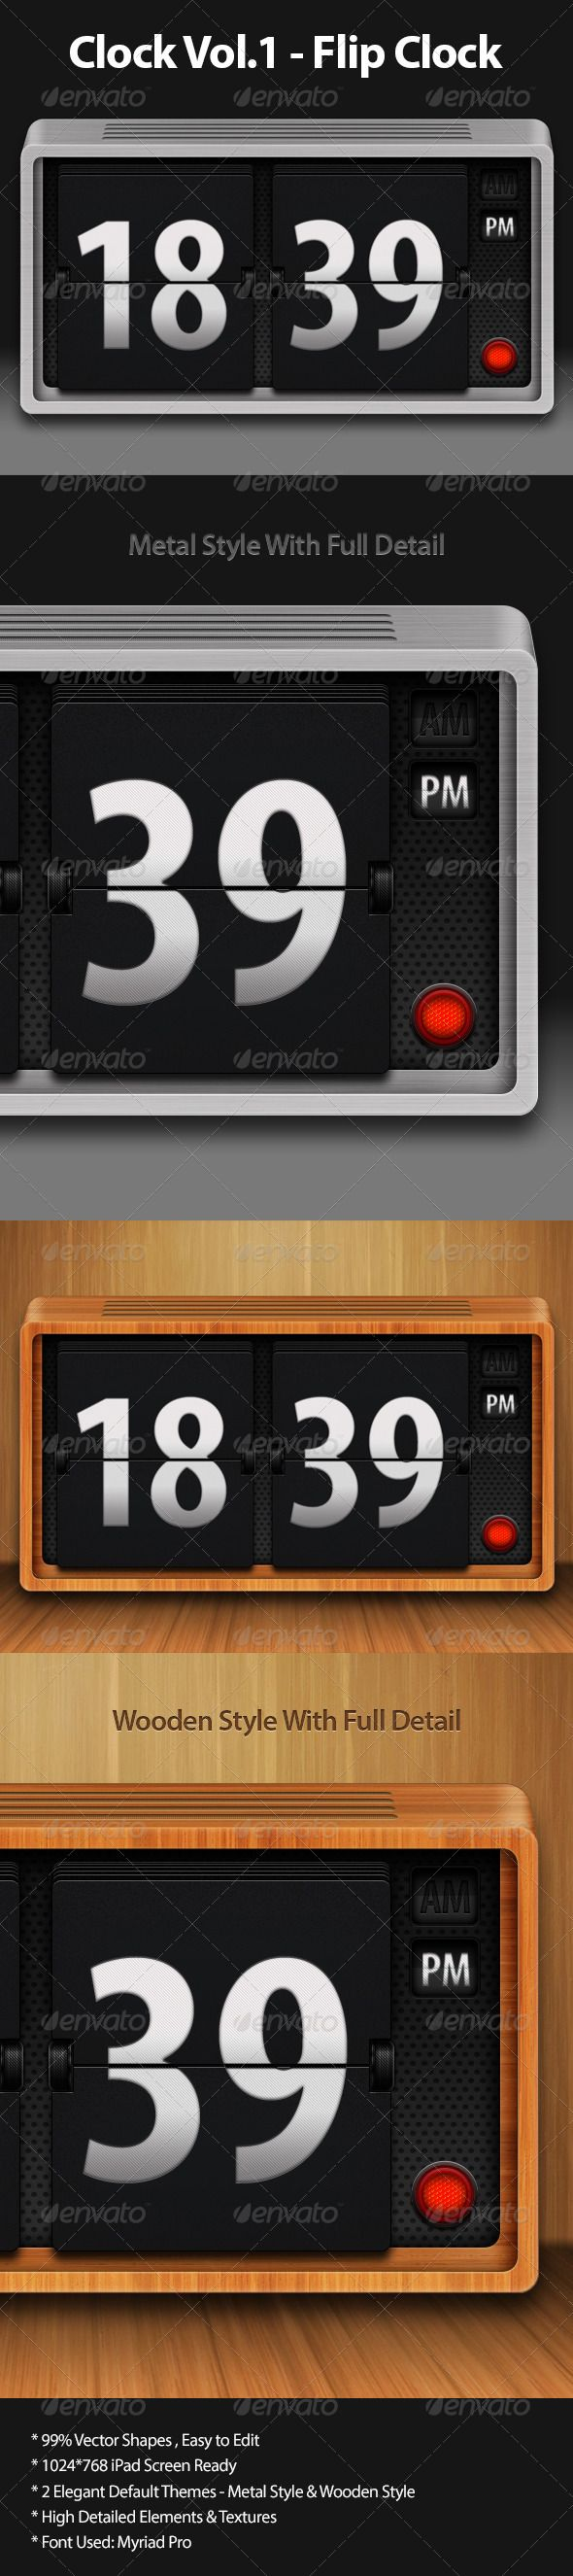 Clock Vol.1 - Flip Clock #GraphicRiver High detailed Flip Clock UI Elements for Apps UI design and web design. Features: 99% Vector Shapes , Easy to Edit 1024*768 iPad Screen Ready 2 Elegant Default Themes – Metal Style & Wooden Style High Detailed Elements & Textures Font Used: Myriad Pro Hope you like it! And don't forget to rate it! Created: 13July12 GraphicsFilesIncluded: PhotoshopPSD Layered: Yes MinimumAdobeCSVersion: CS PixelDimensions: 1024x768 Tags: button #clock #flip #flipclock…